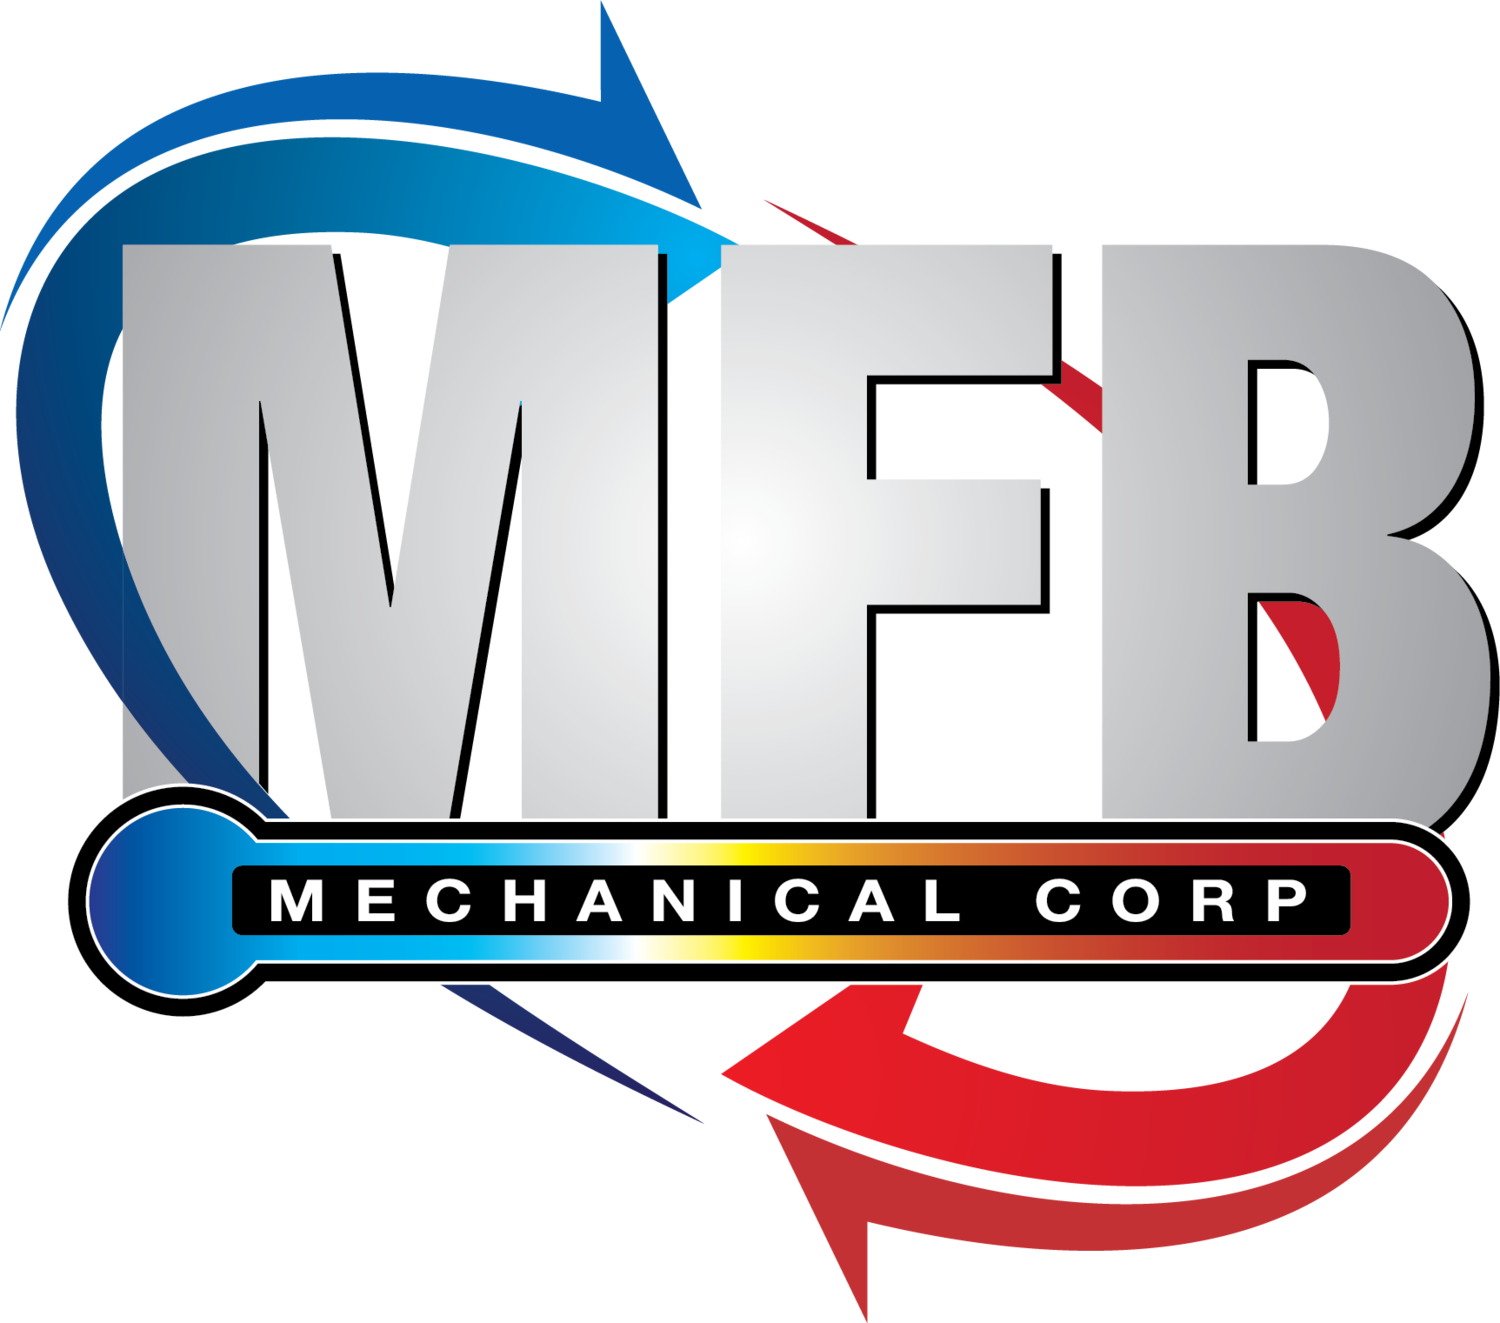 MFB Mechanical Corp